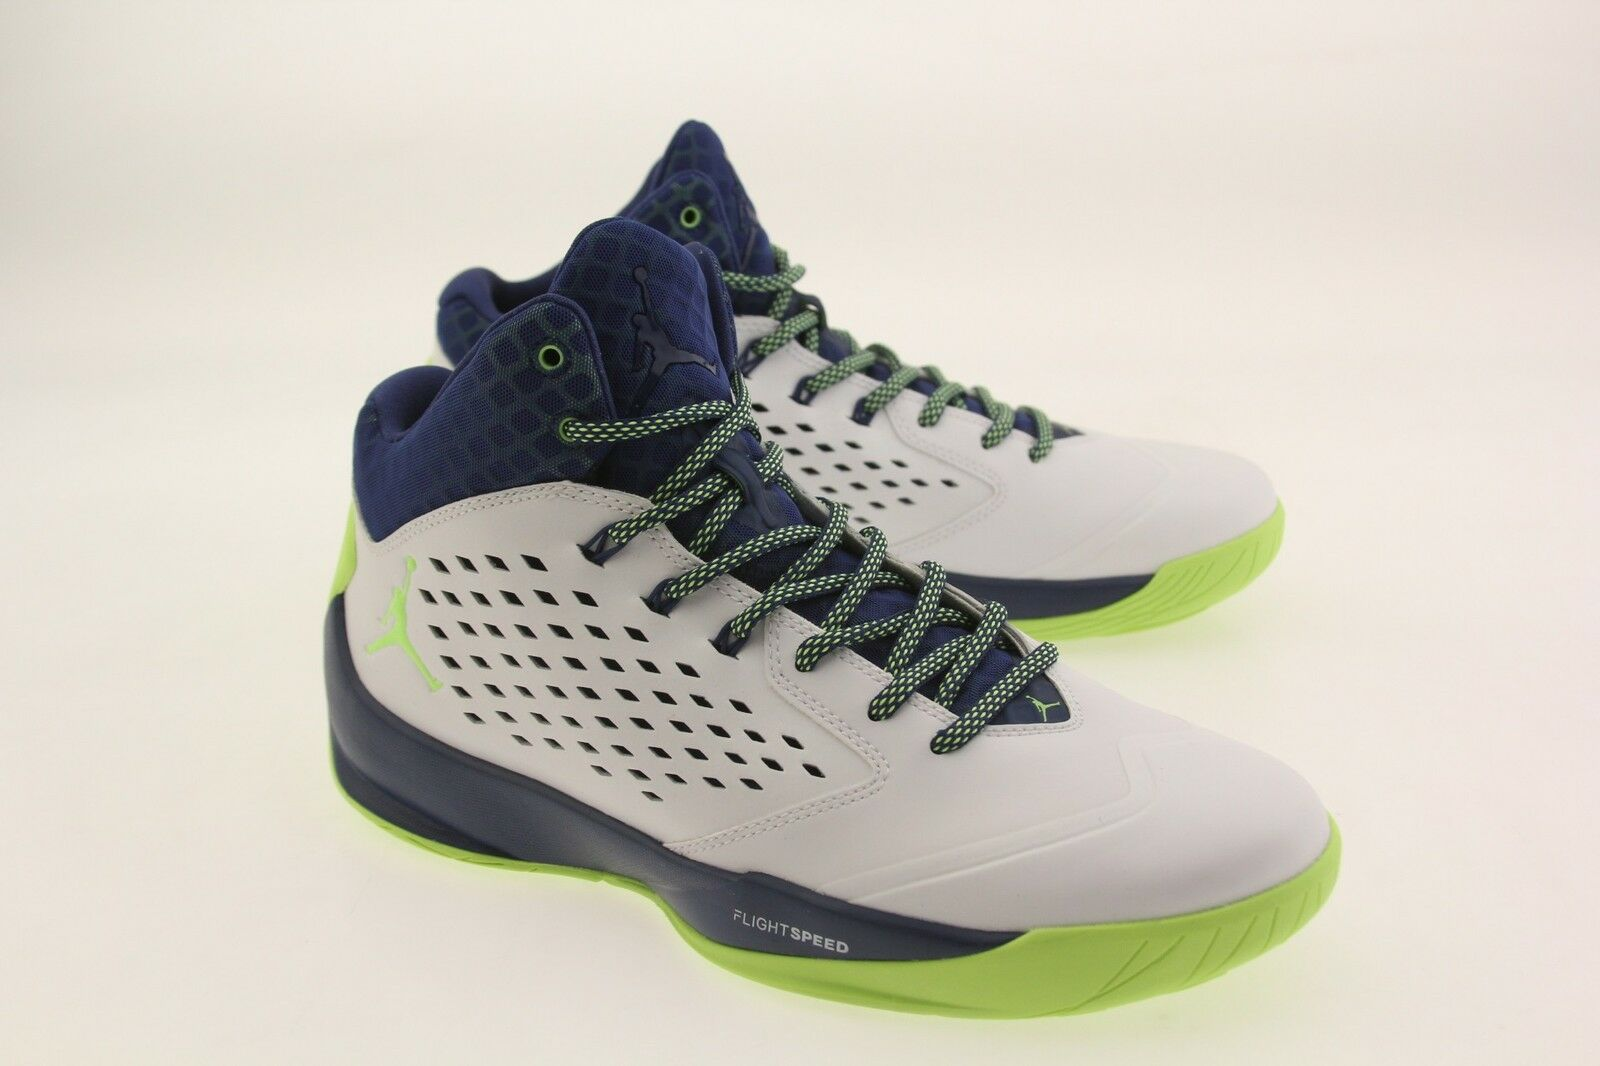 Jordan Men Rising High  white ghost green insignia blue infrared23 The most popular shoes for men and women